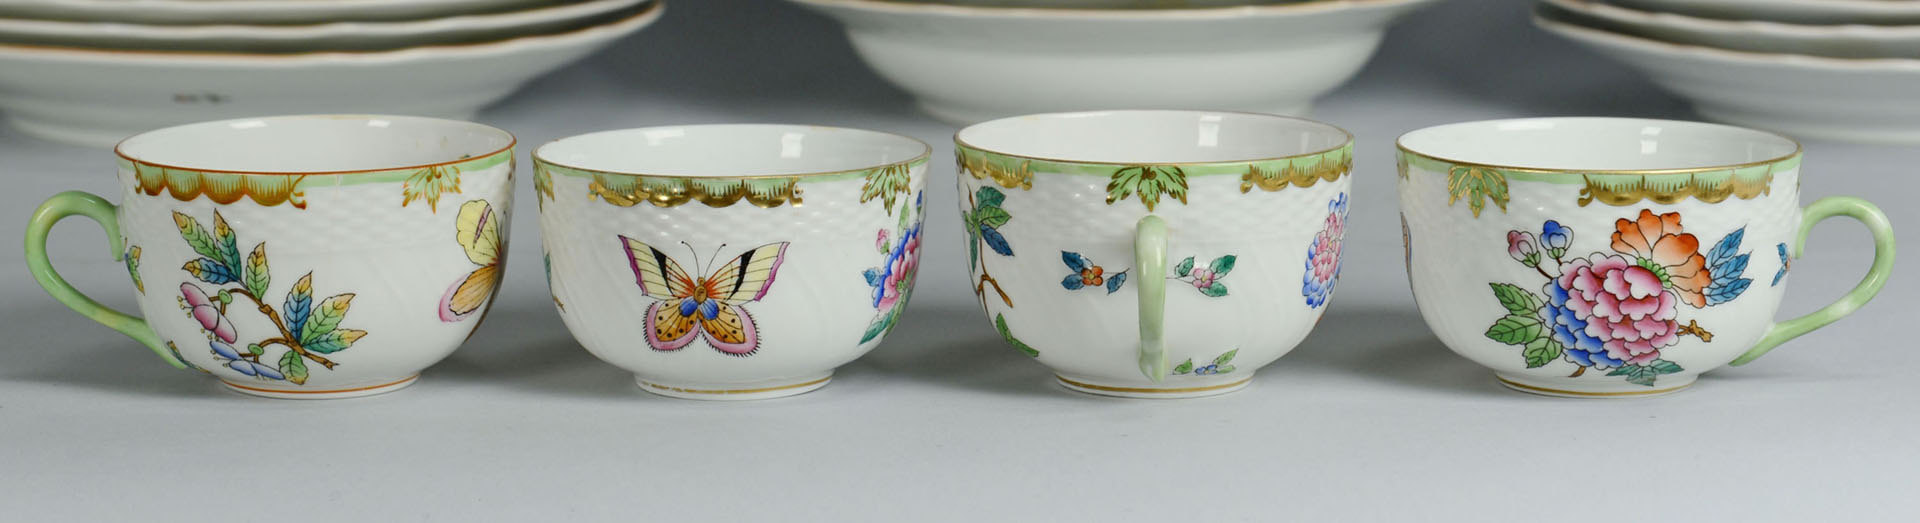 Lot 109: Herend Queen Victoria Dinnerware, 76 pcs